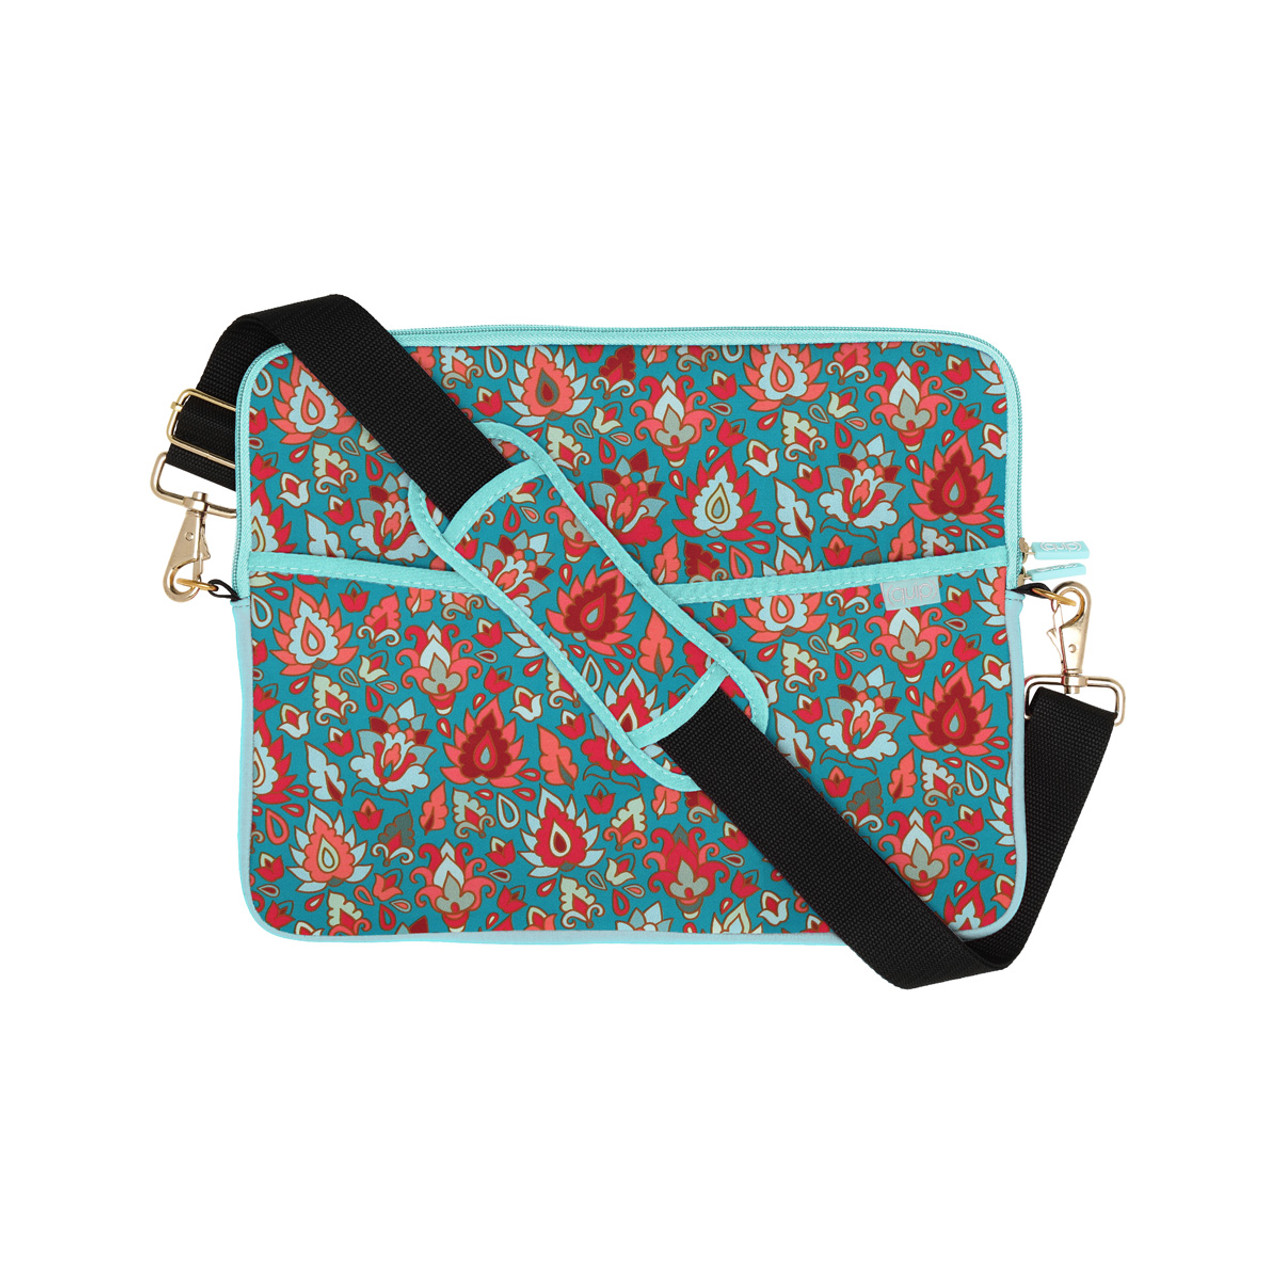 Blue and Black Paisley Therapist Bag